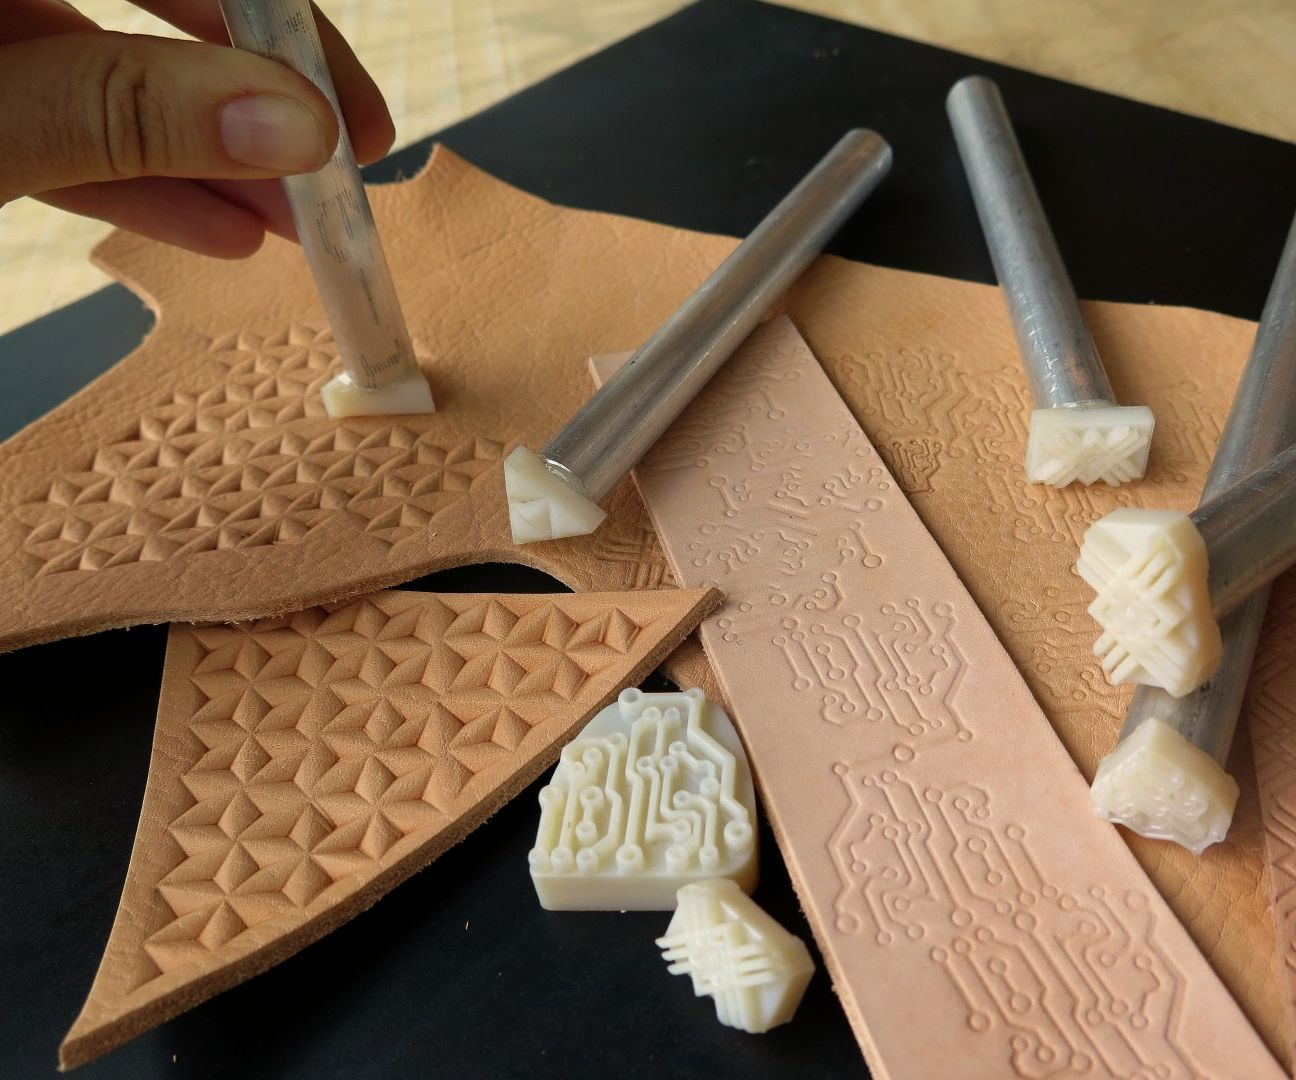 3D Print Your Own Leather Stamps